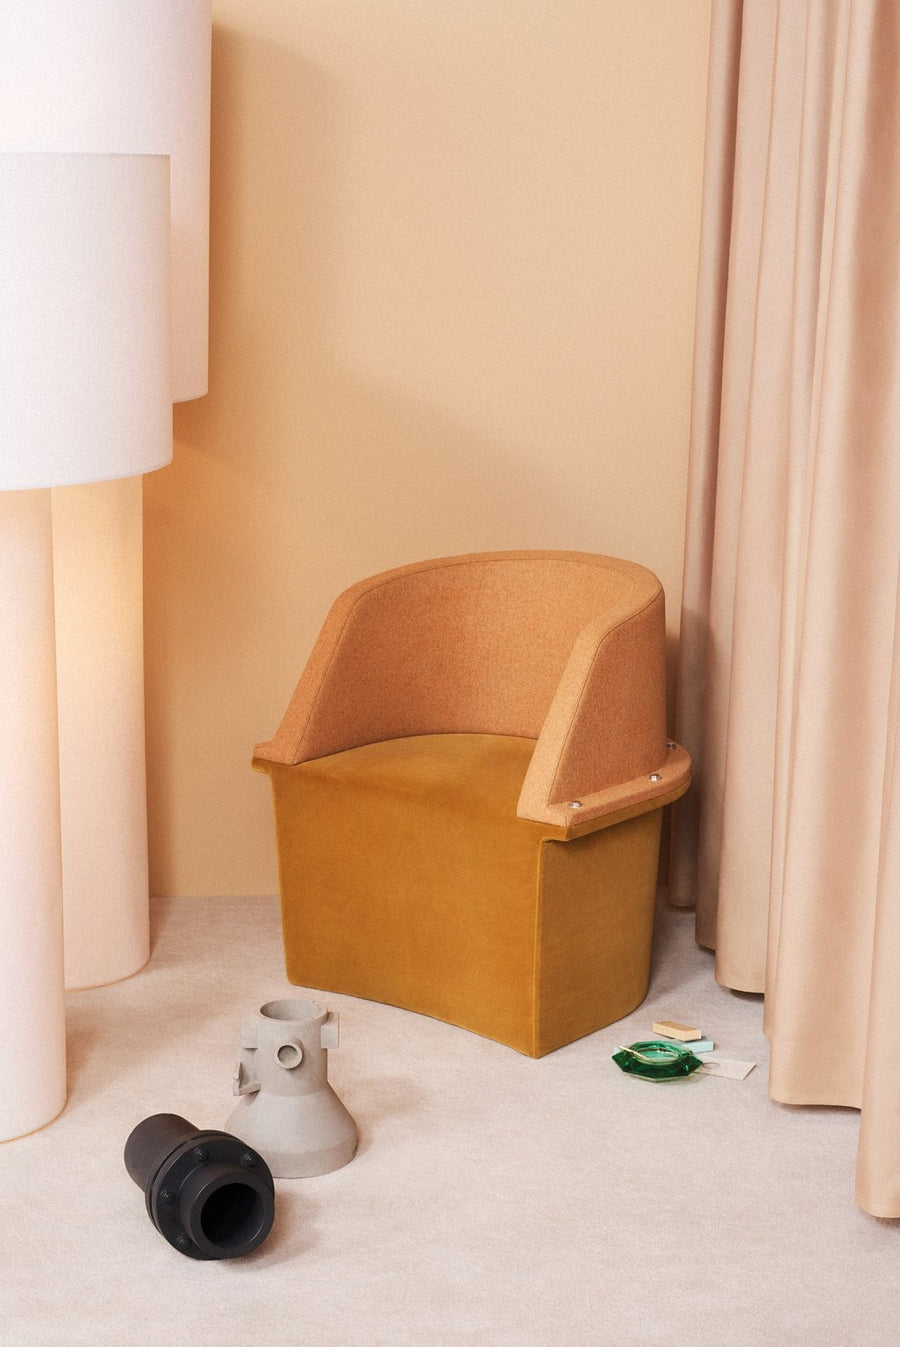 ASSEMBLY Upholstered Armchair with Steel Frame and Bolts by Moroso for Diesel Living - DUPLEX DESIGN